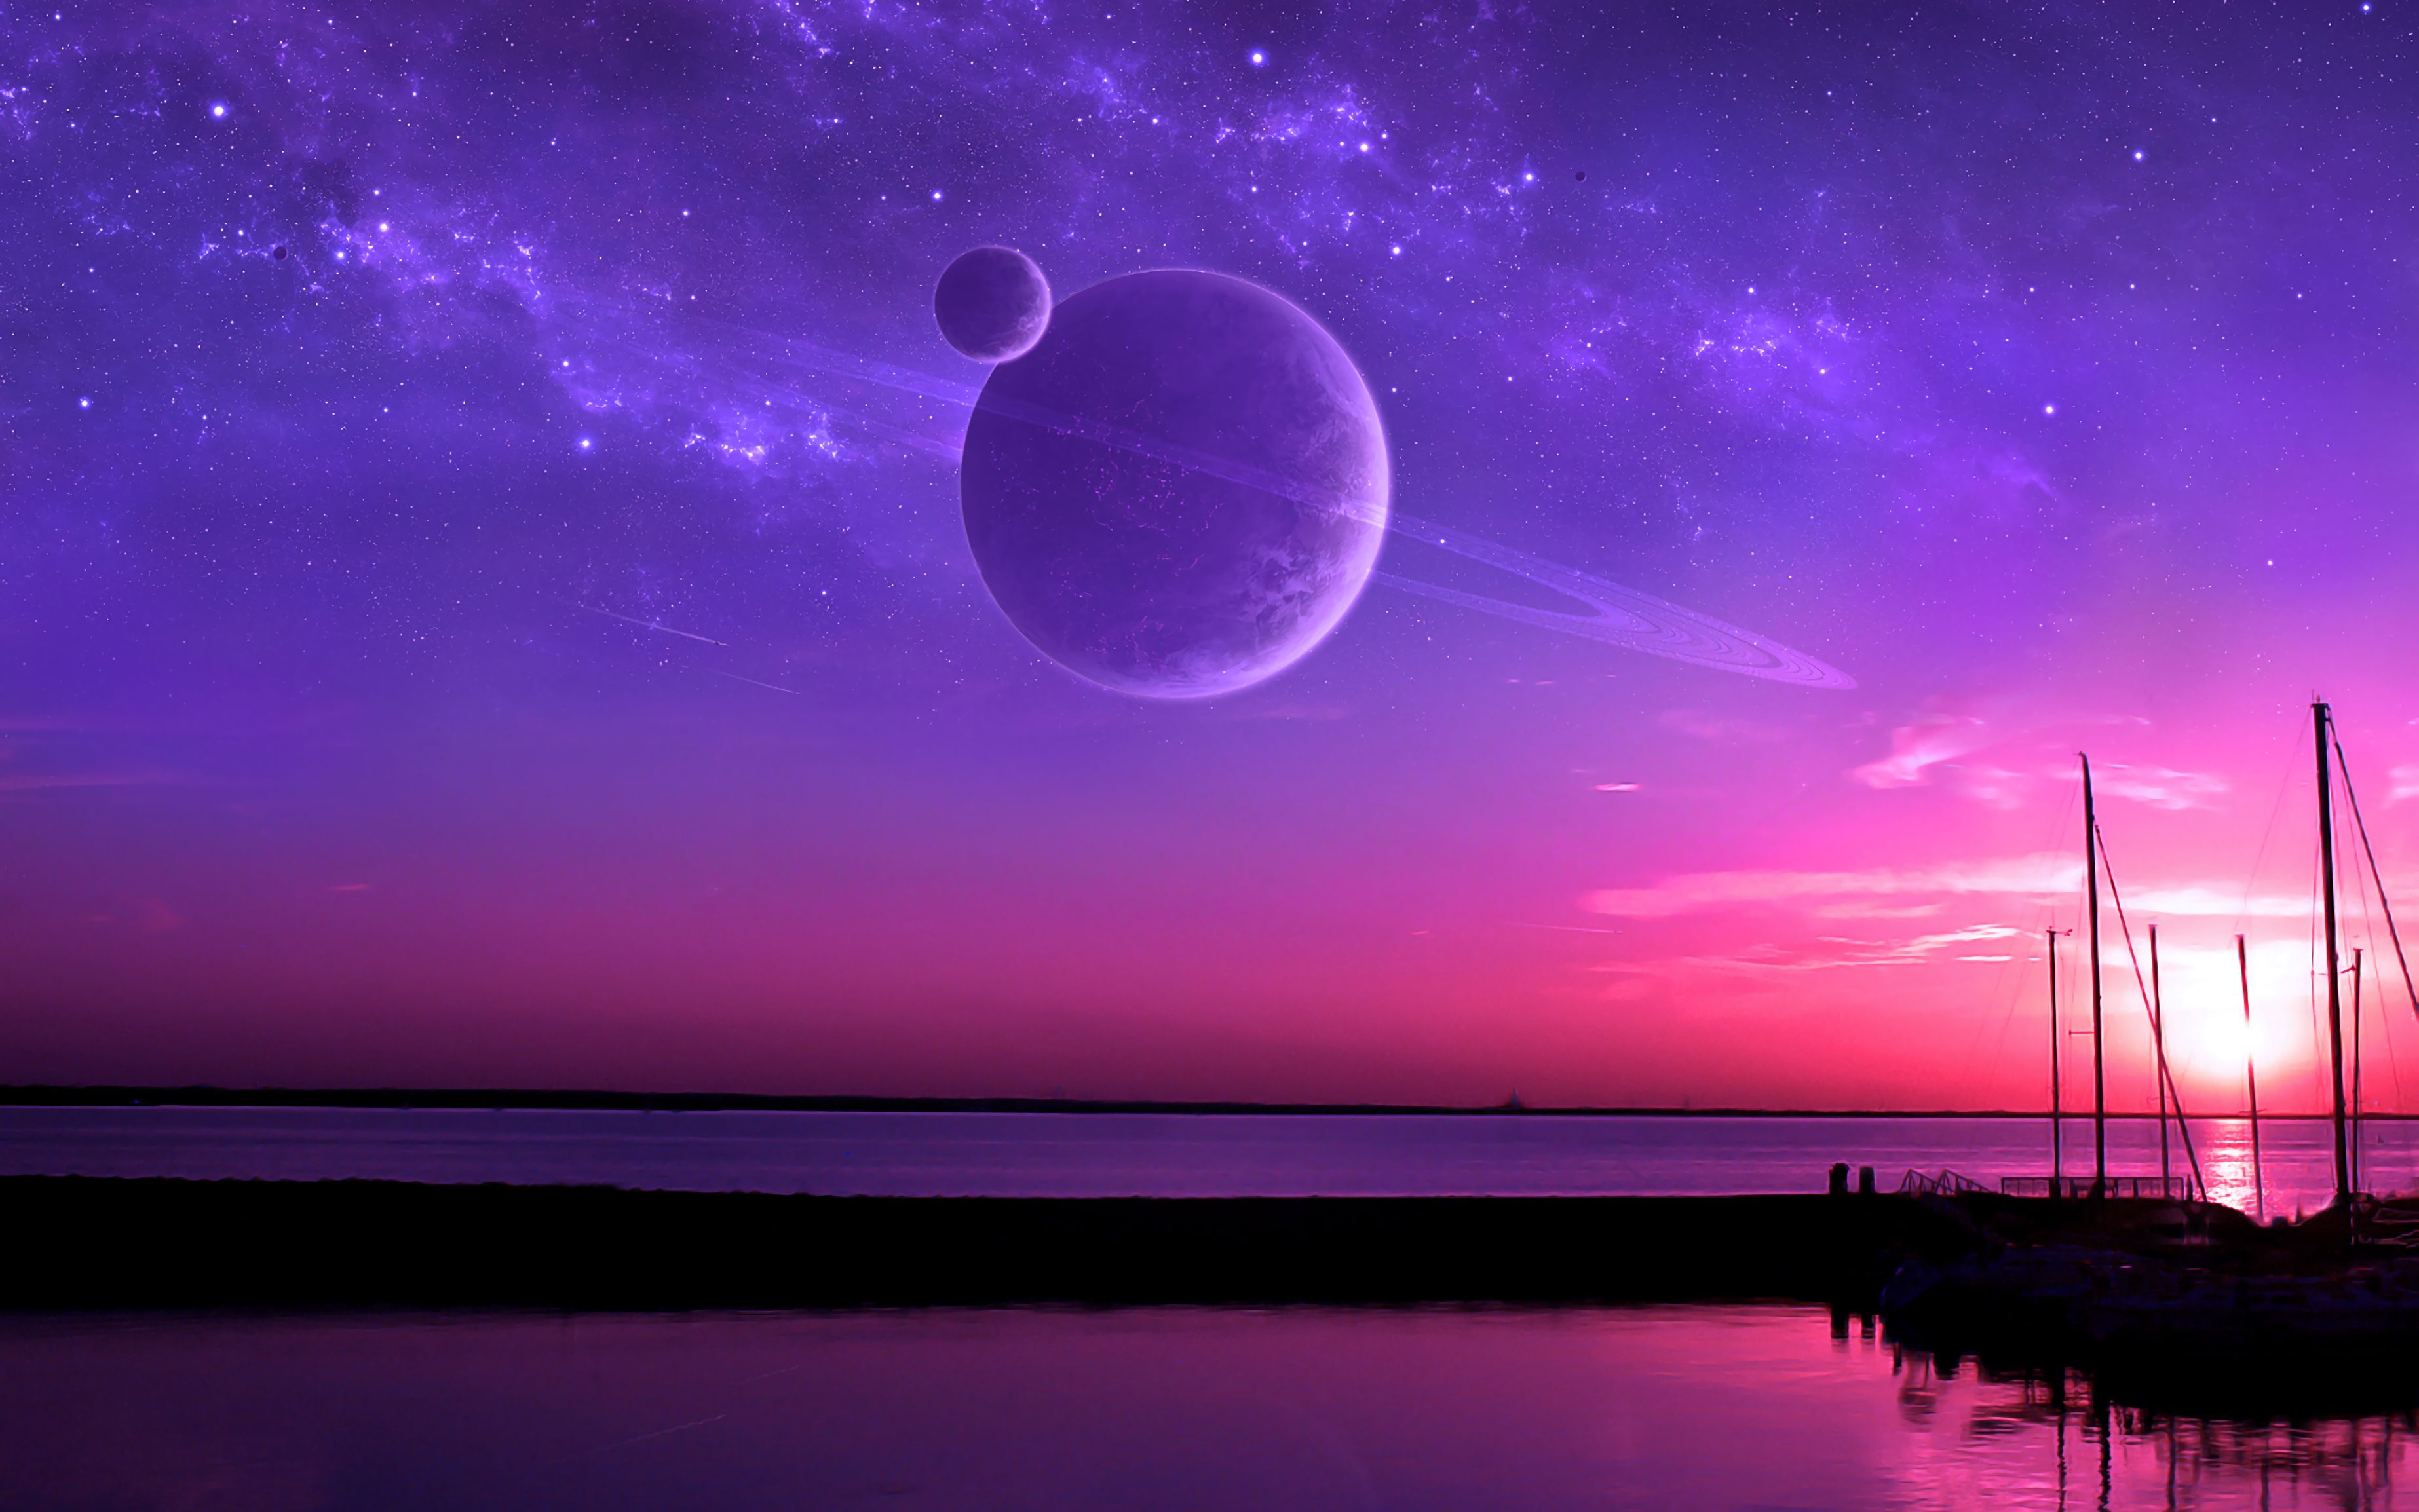 72308 download wallpaper Satellite, Horizon, Sea, Art, Planets screensavers and pictures for free